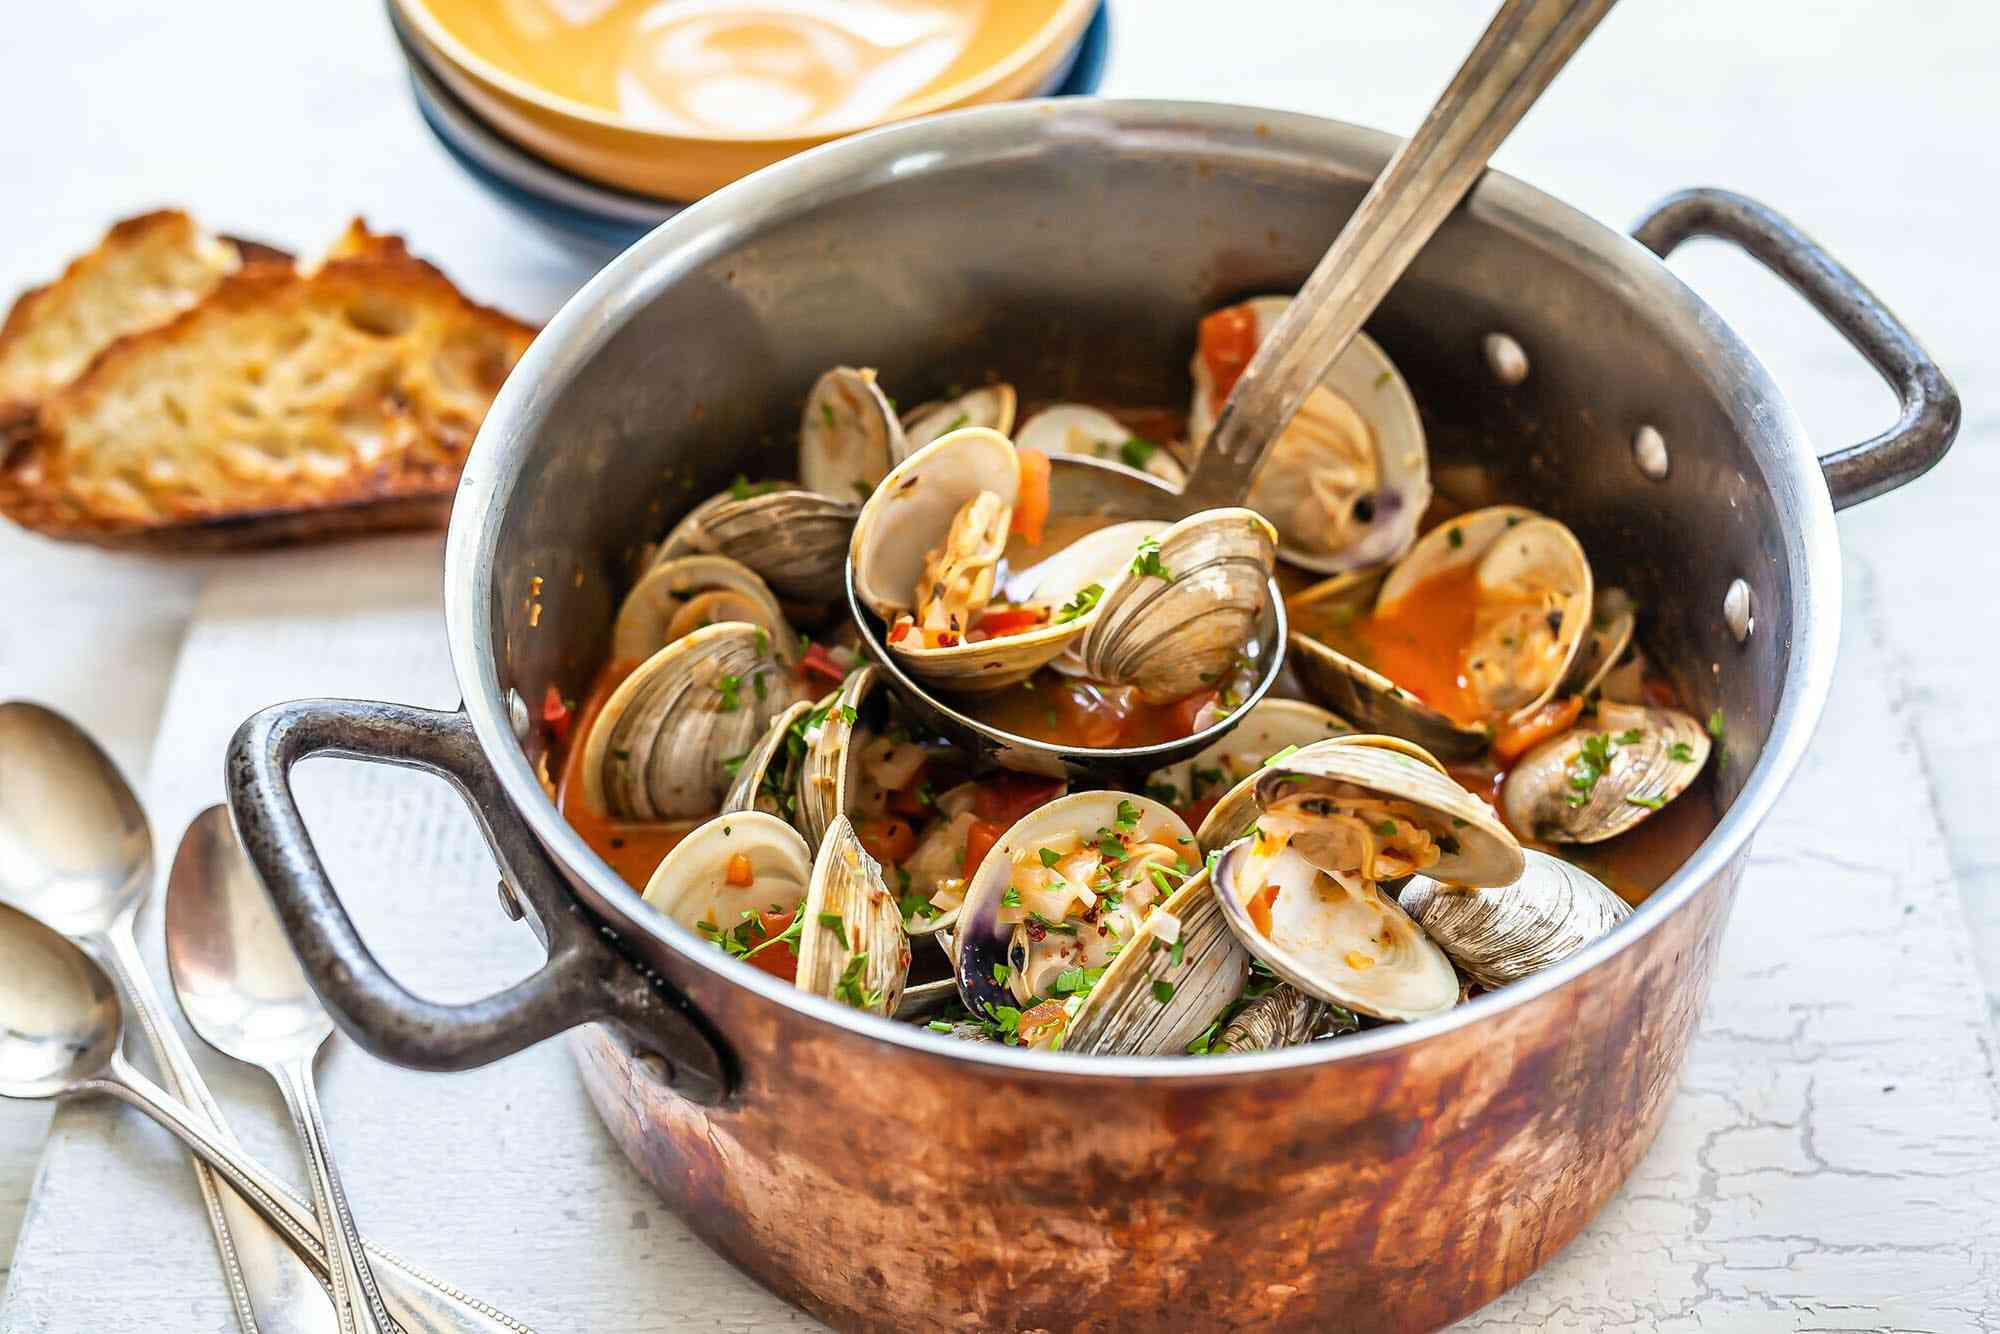 Stockpot of spanish clams and chorizo with a full ladle of the clams resting on top of the pot. Grilled bread, spoons and bowls are around the pot.